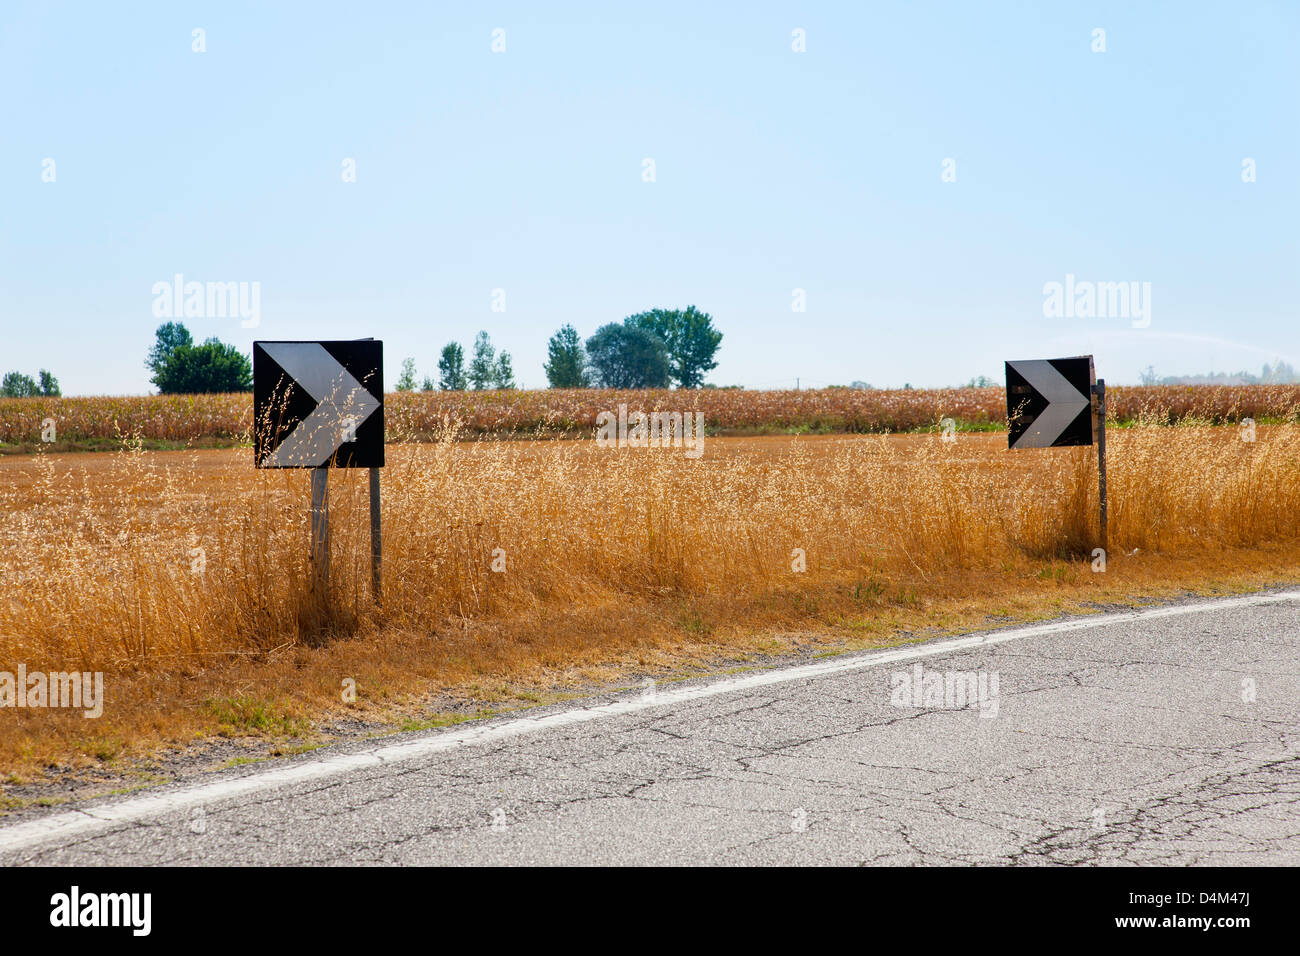 Traffic arrows on rural road - Stock Image